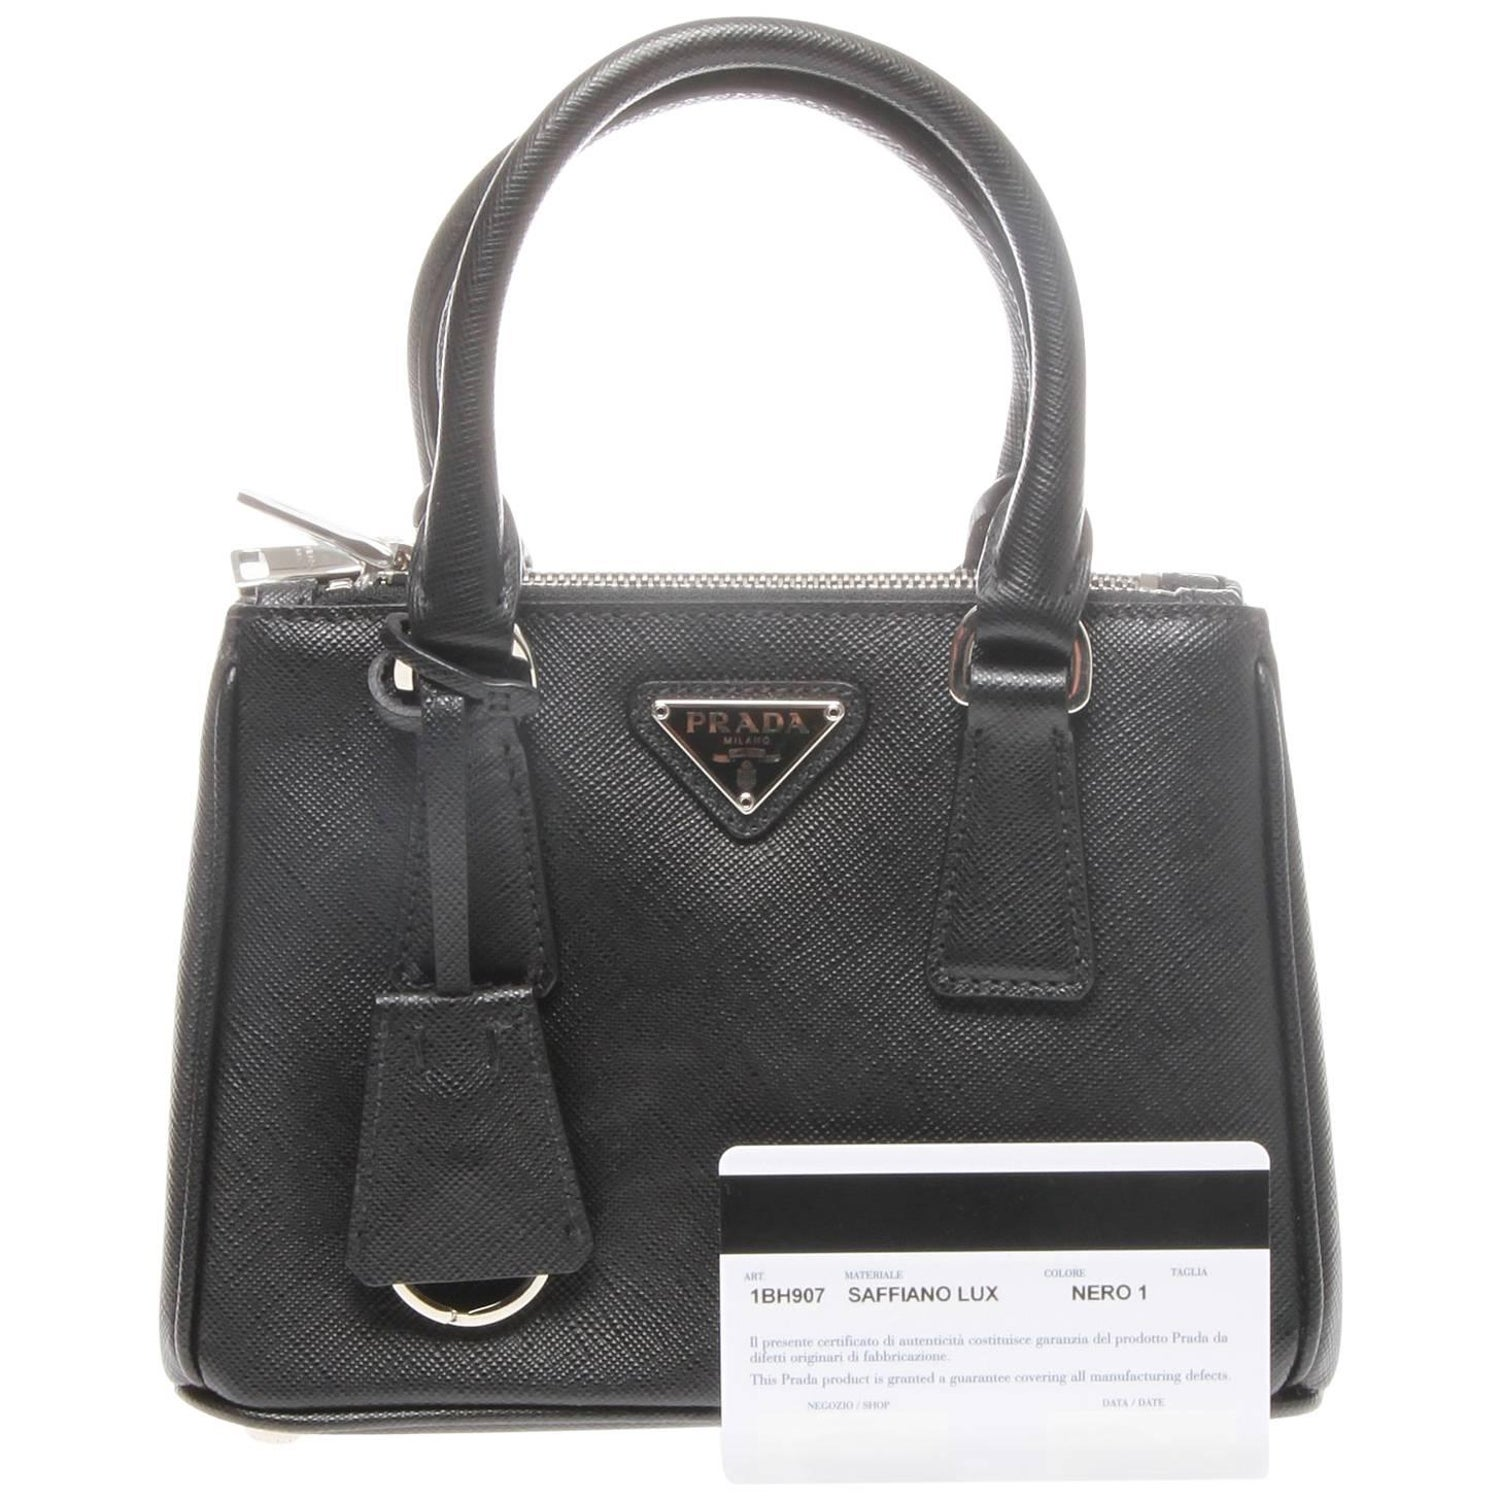 7ef09c7bf8e7 Prada Saffiano Lux Mini Promenade Bag For Sale at 1stdibs